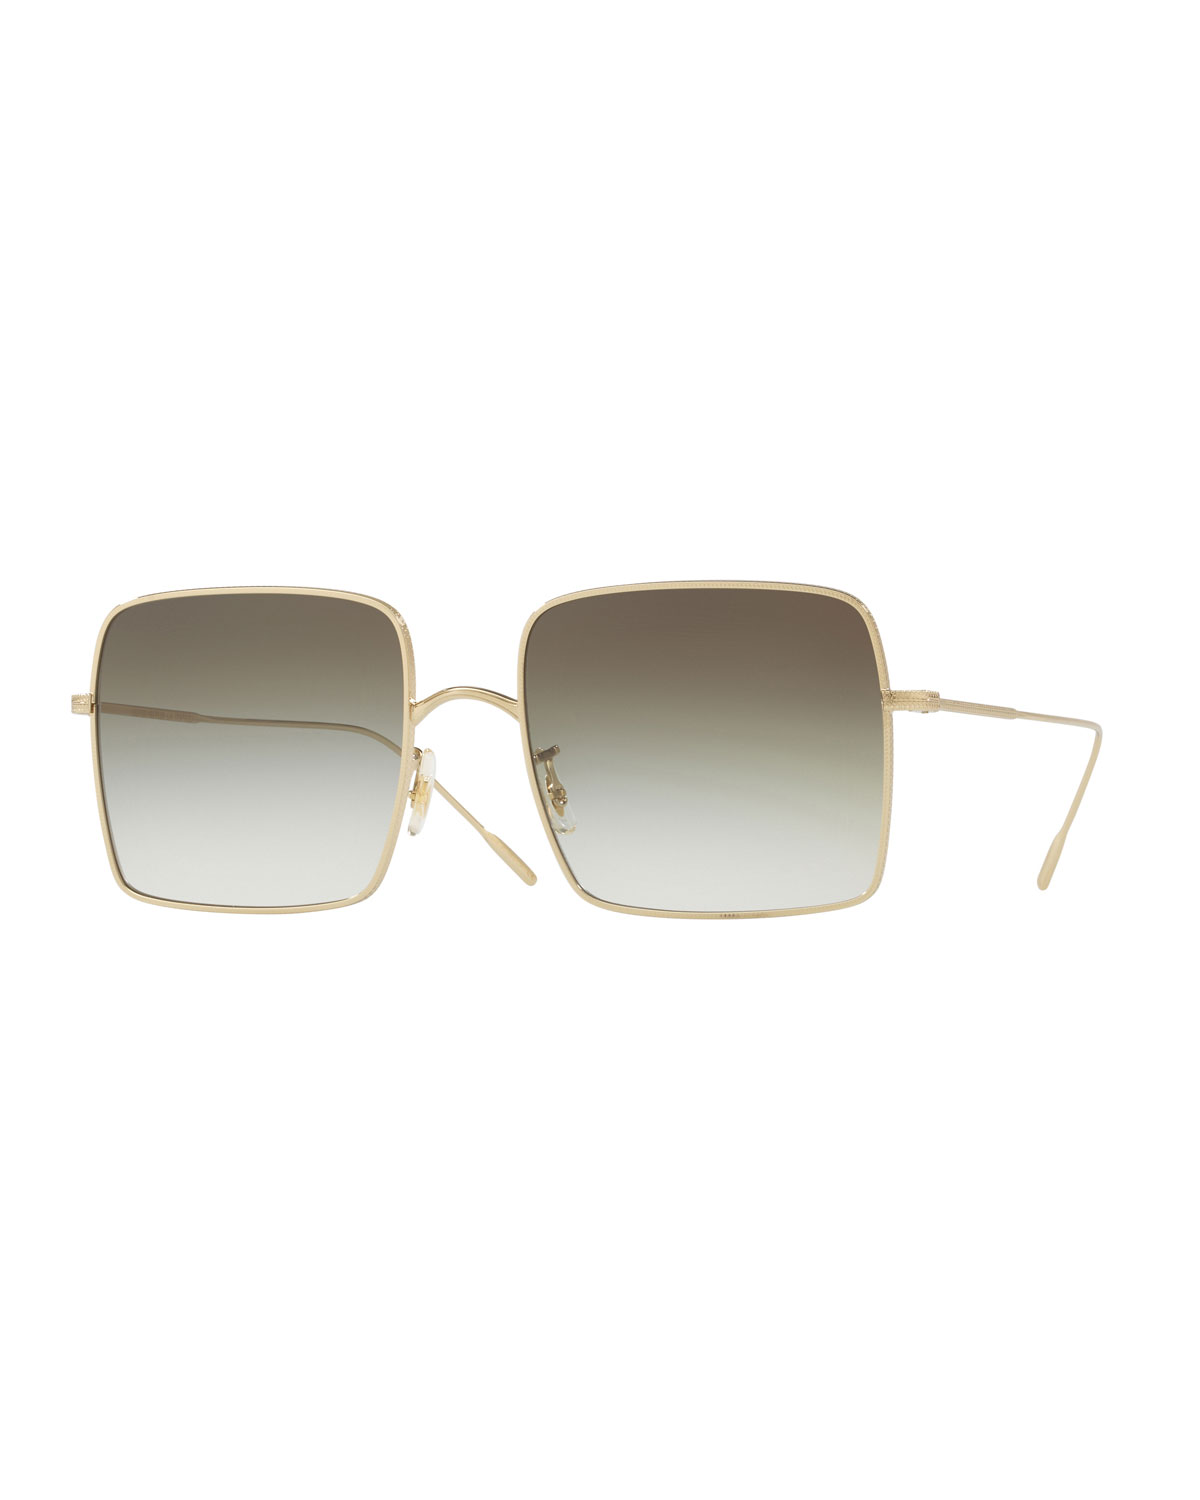 Rassine 56Mm Sunglasses - Soft Gold Olive